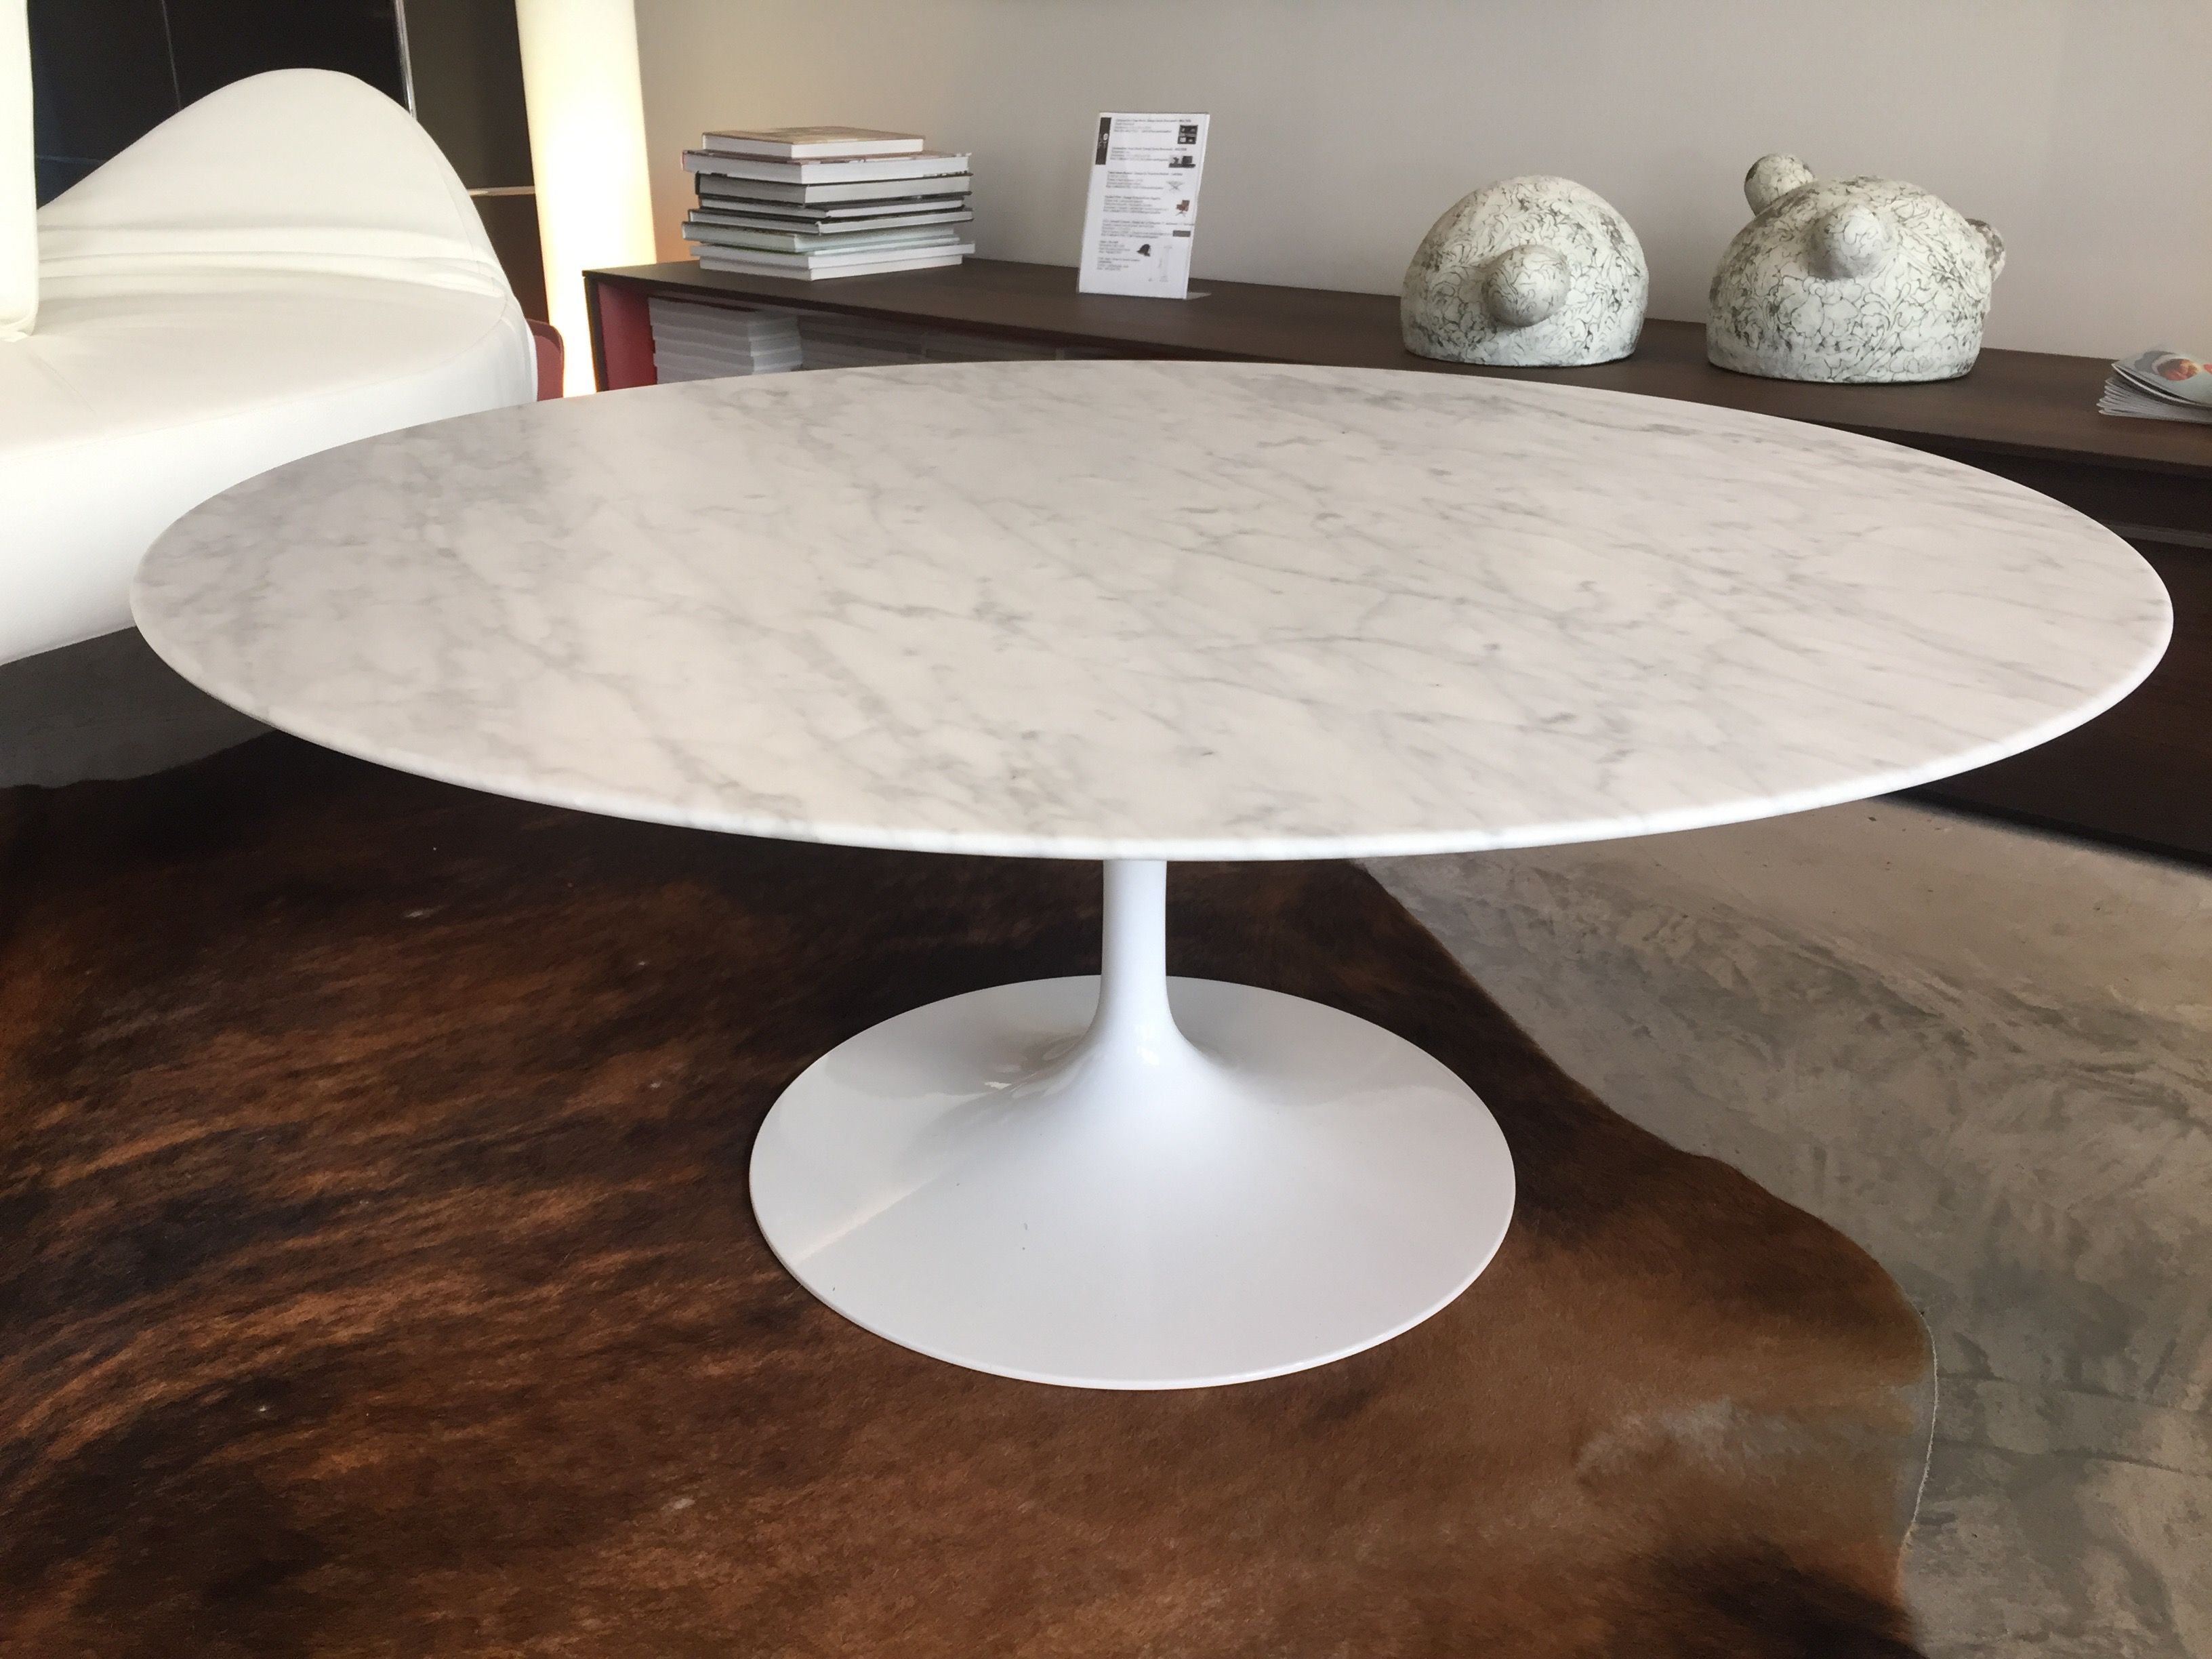 Table ronde basse knoll design saarinen plateau marbre arabescato blanc vein gris vernis Dimension table a manger